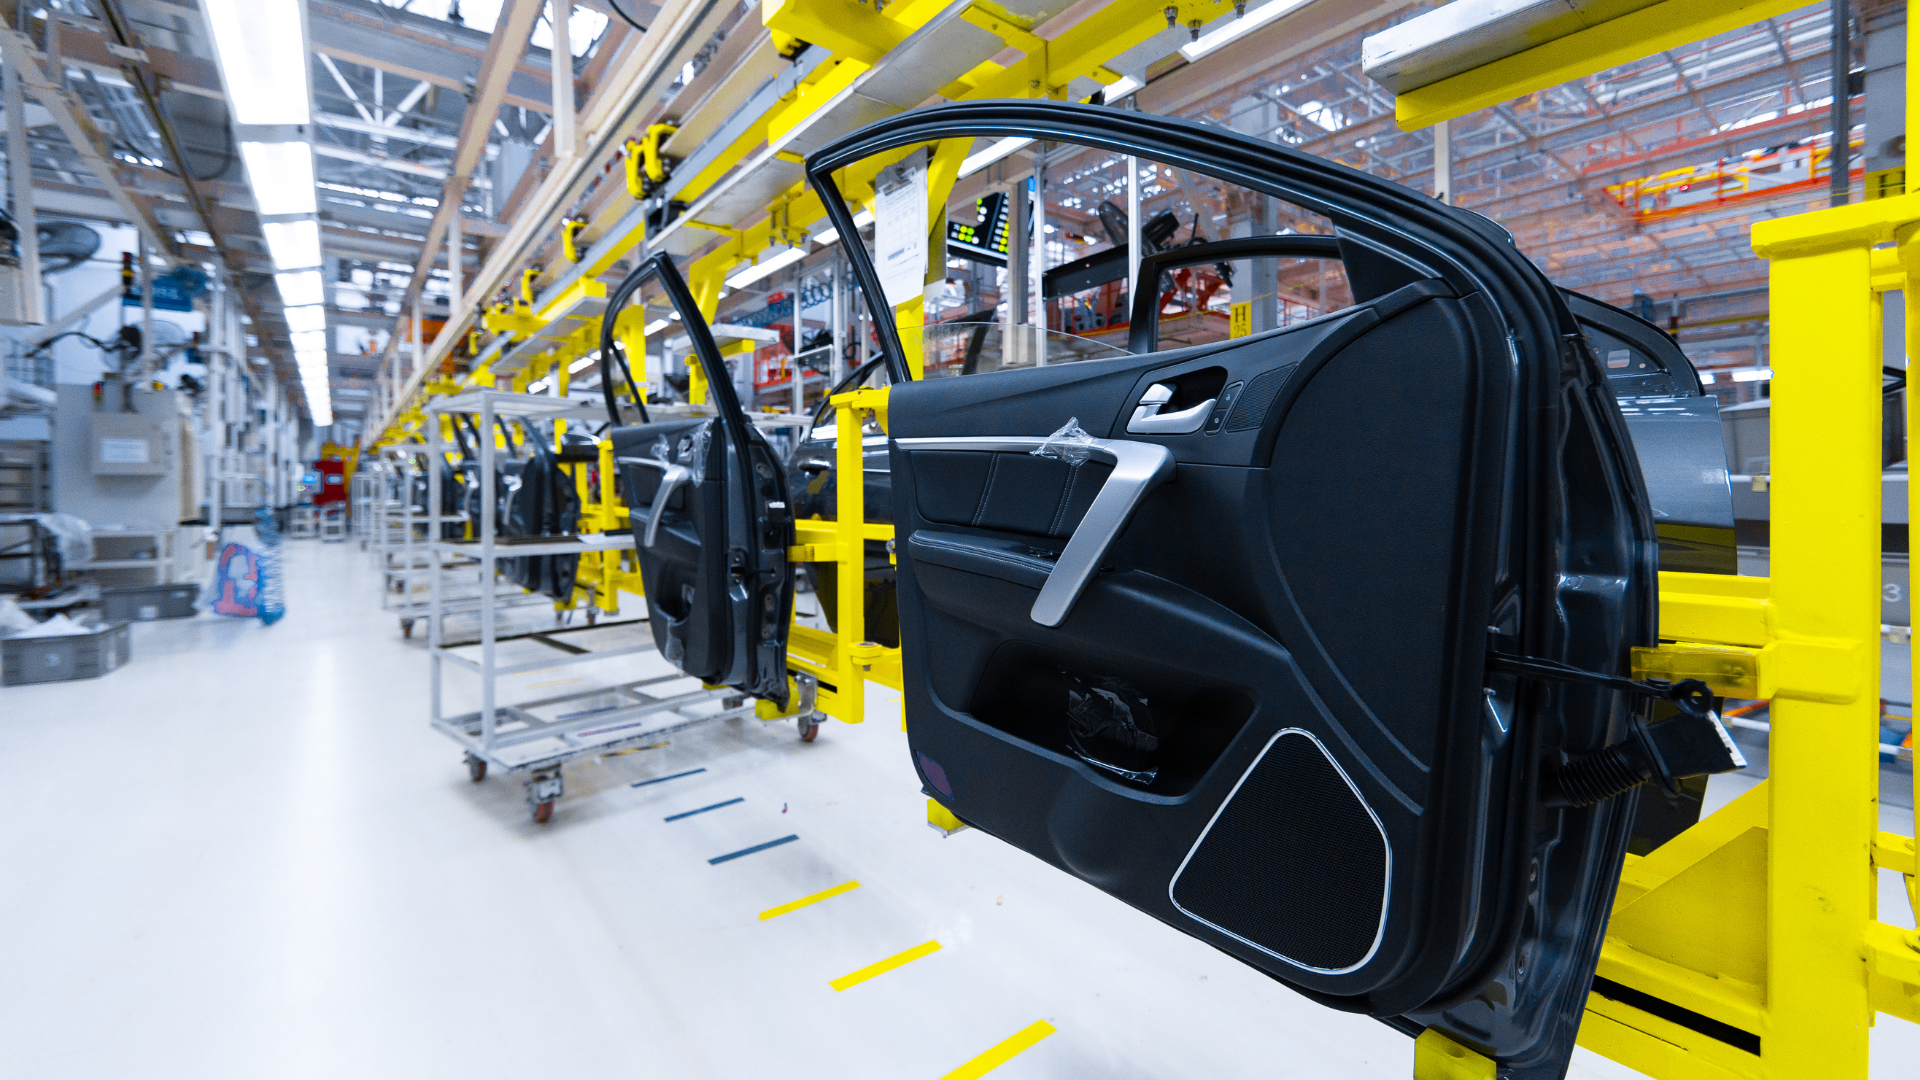 【Aichi,Toyota】Sewing and assembling seats in an automobile factory!